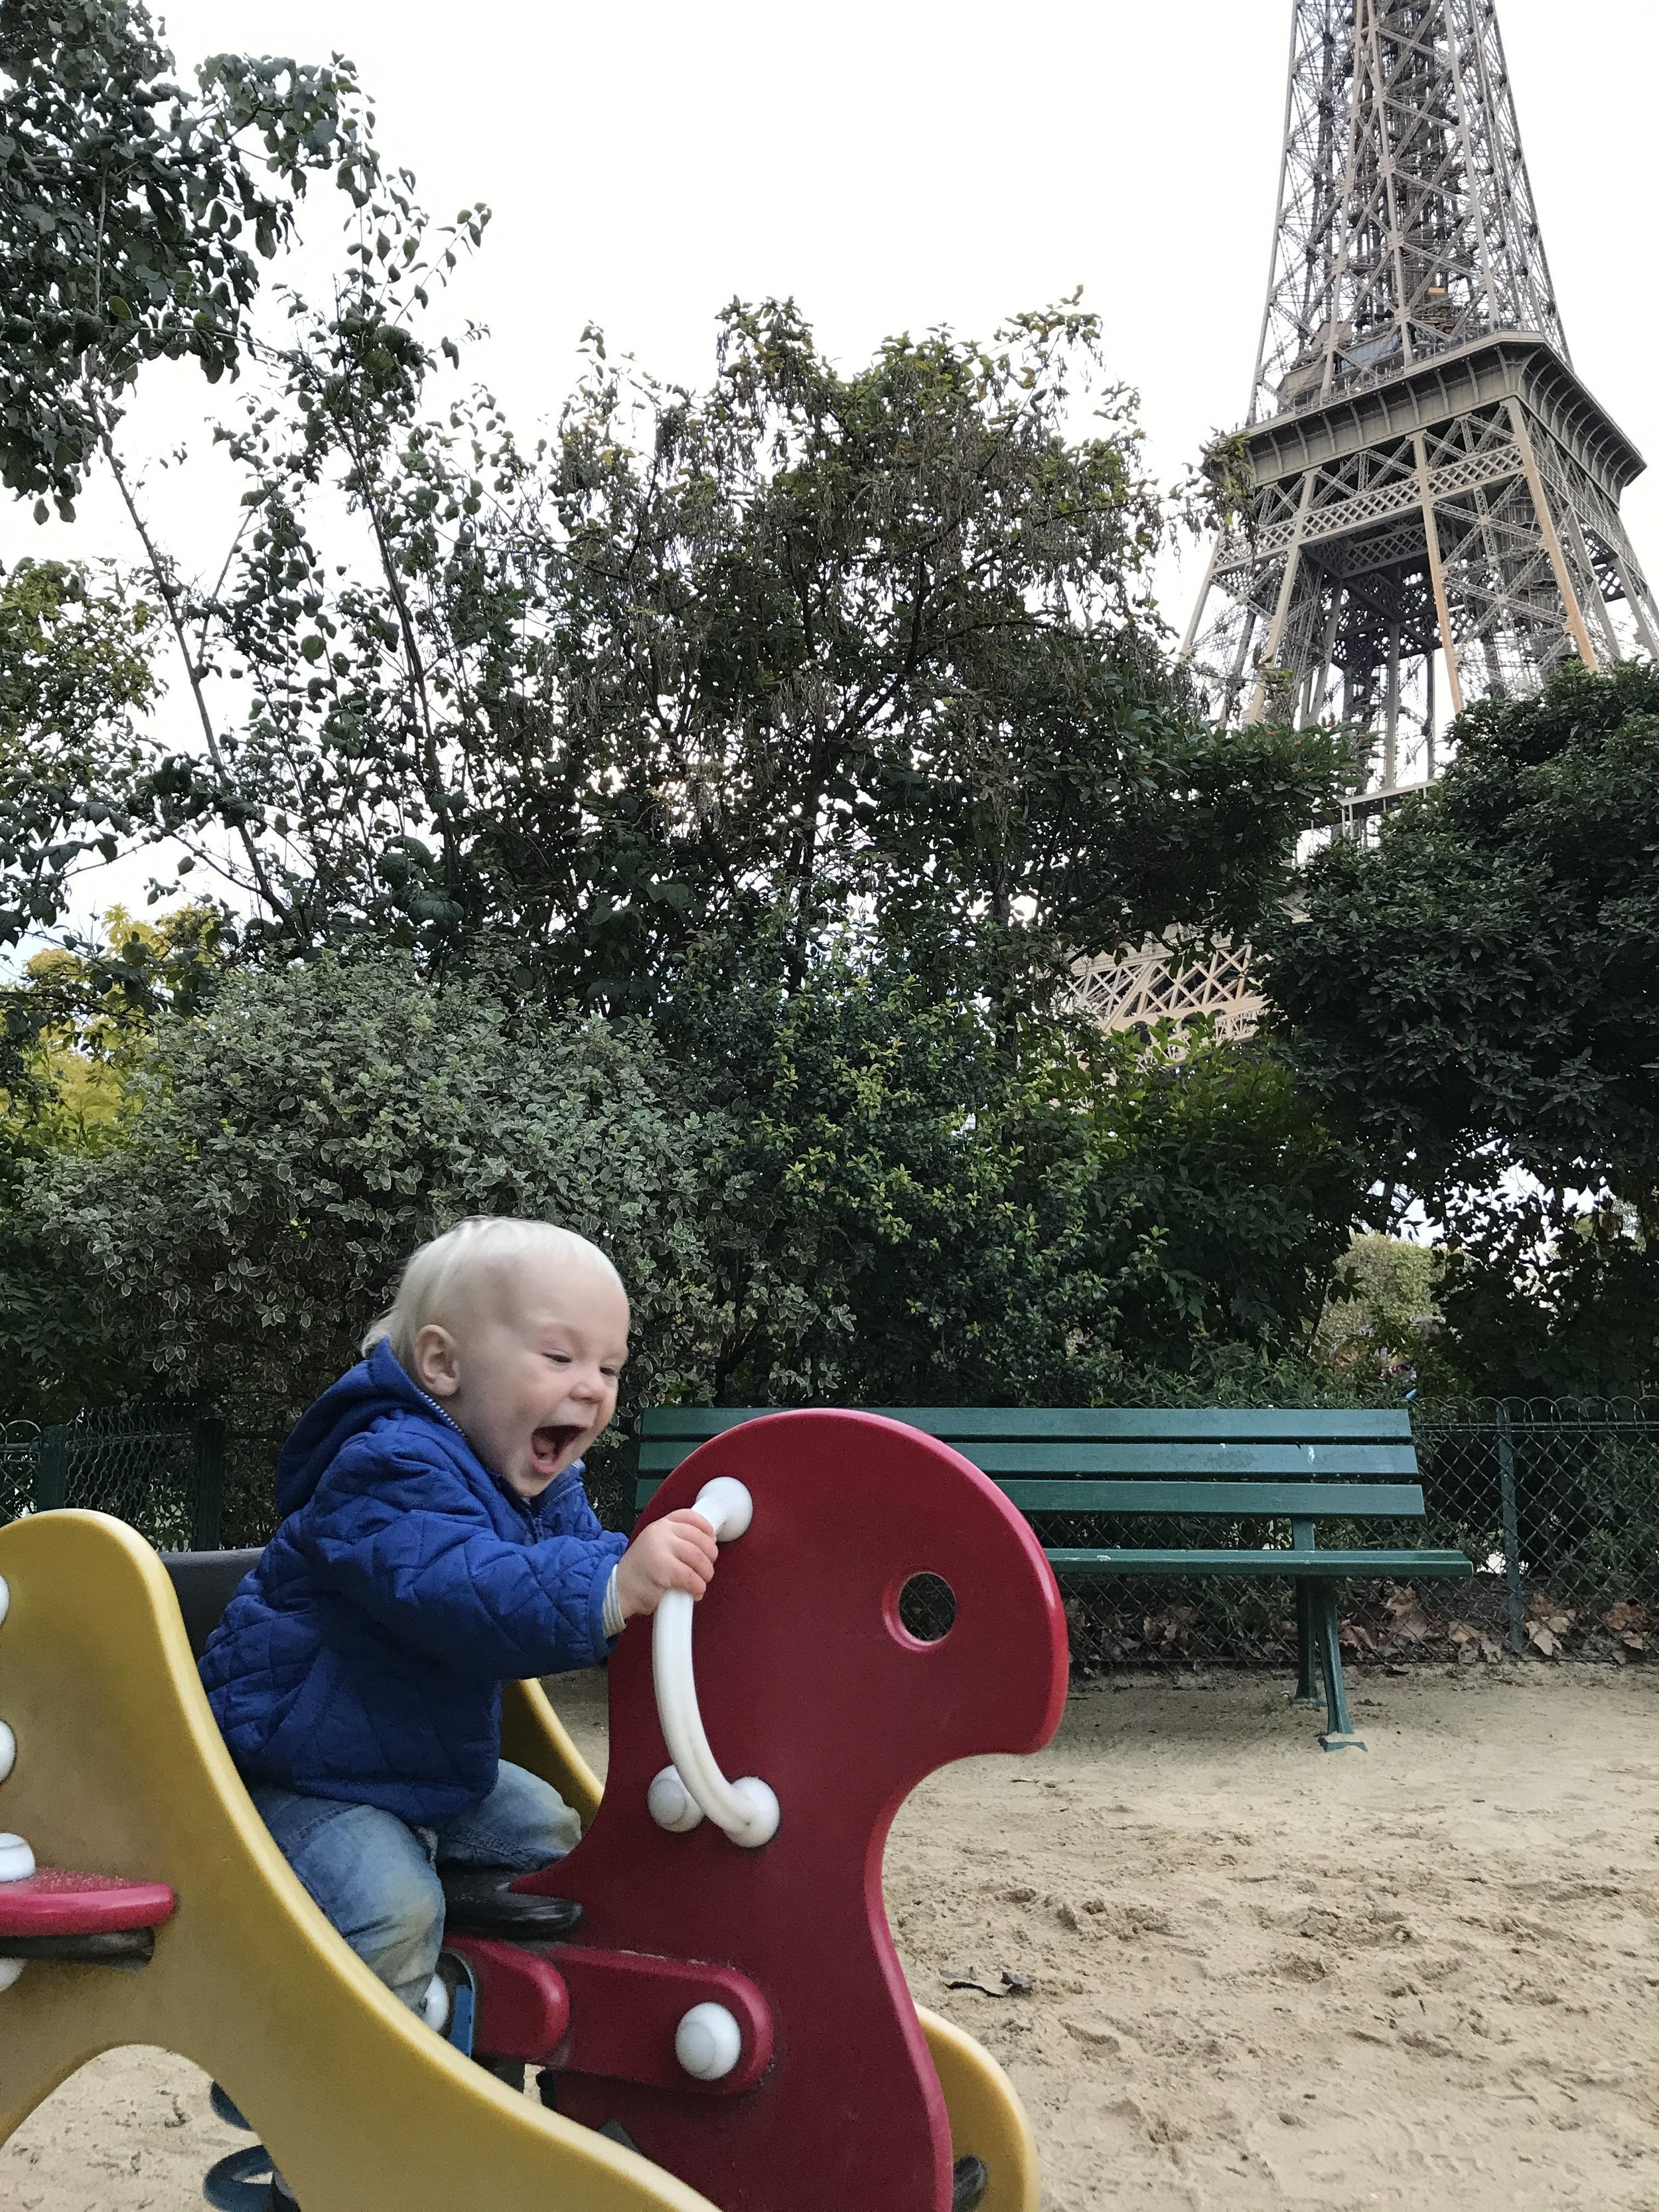 Trip to paris: $389 on air france. Finding a park at the base of the eiffel tower? priceless.